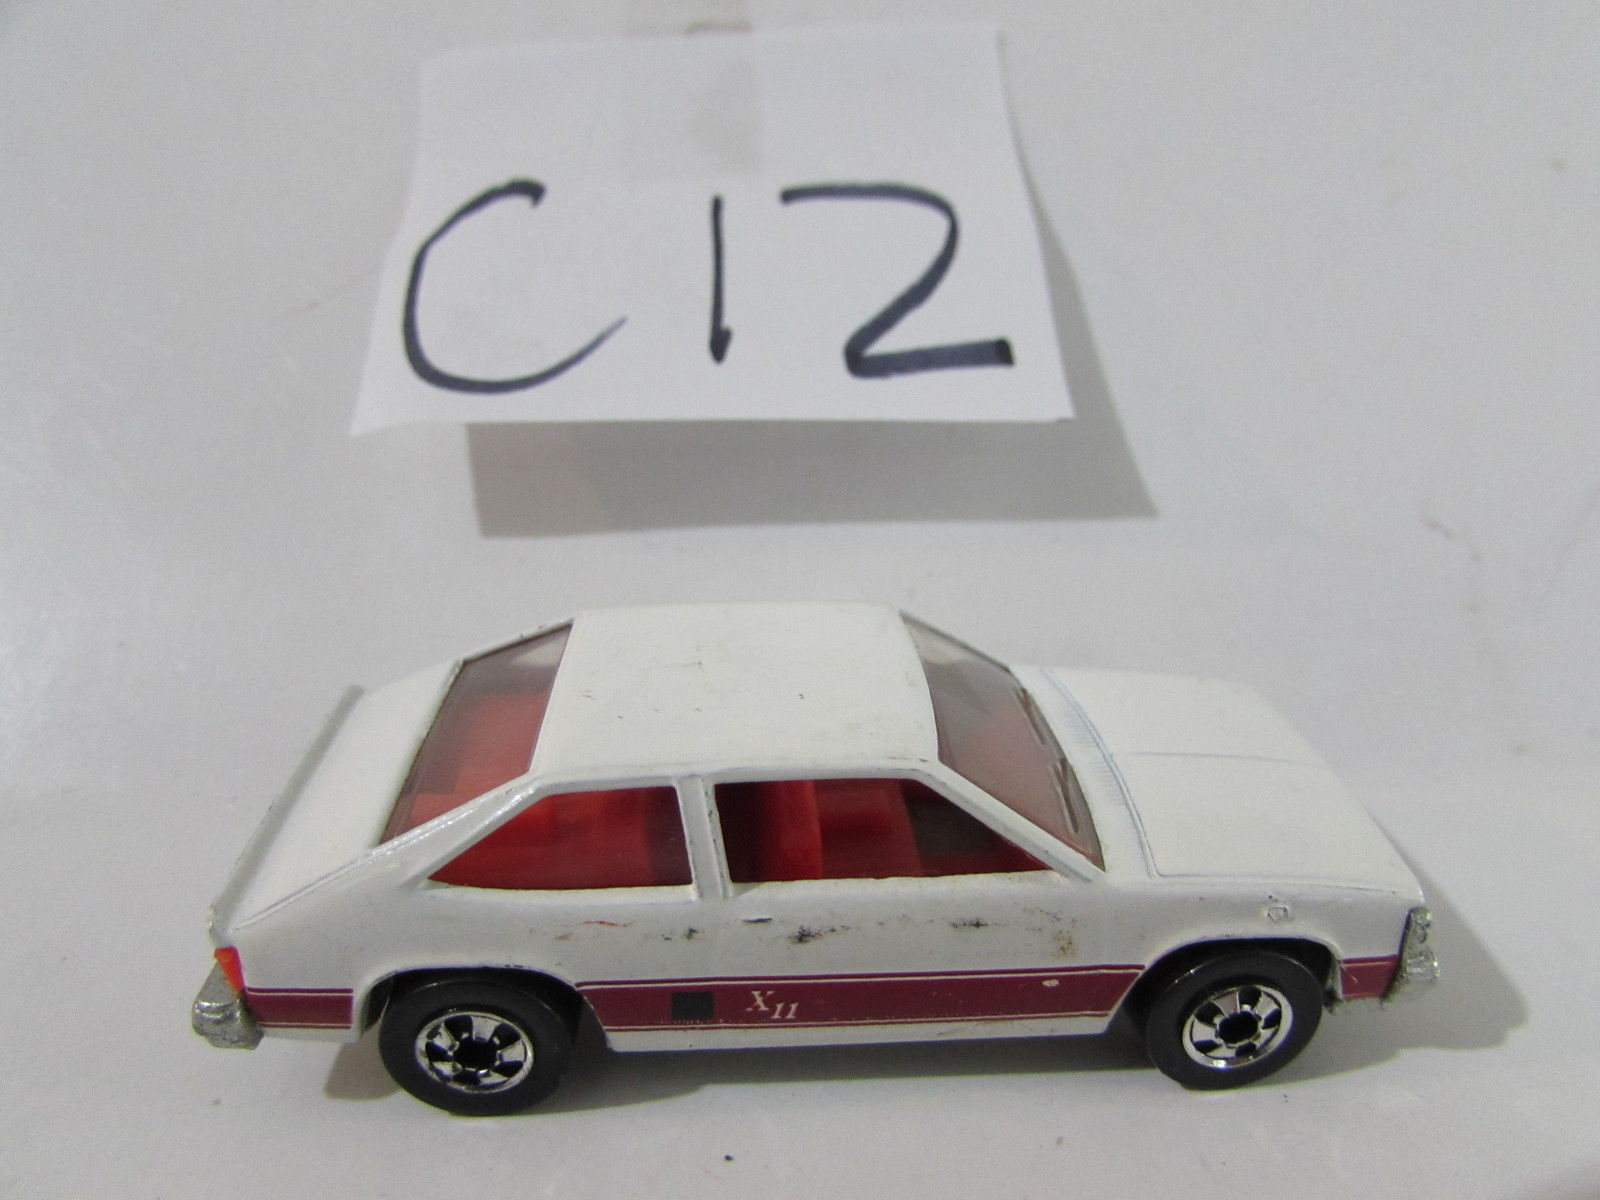 HOT WHEELS 1980 CHEVROLET CITATION XII ON HONG KONG BASE WHITE LOOSE